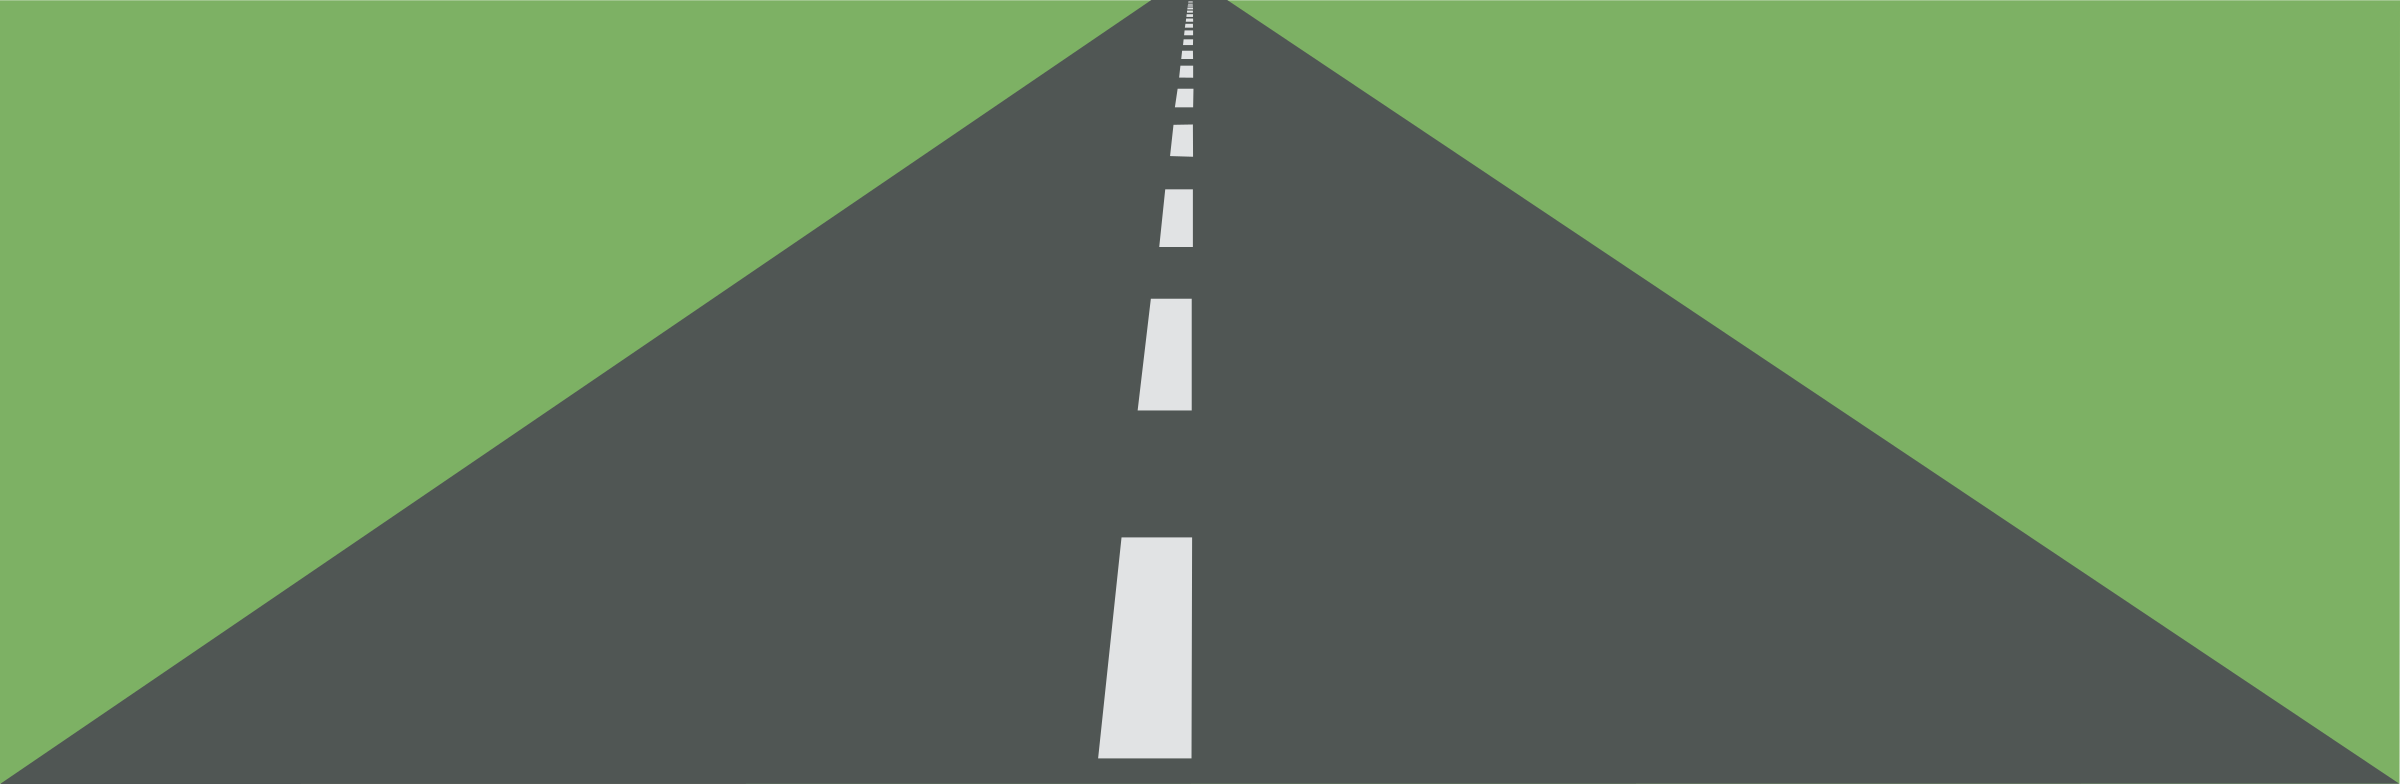 Horizontal Road Clipart - Clipart Suggest